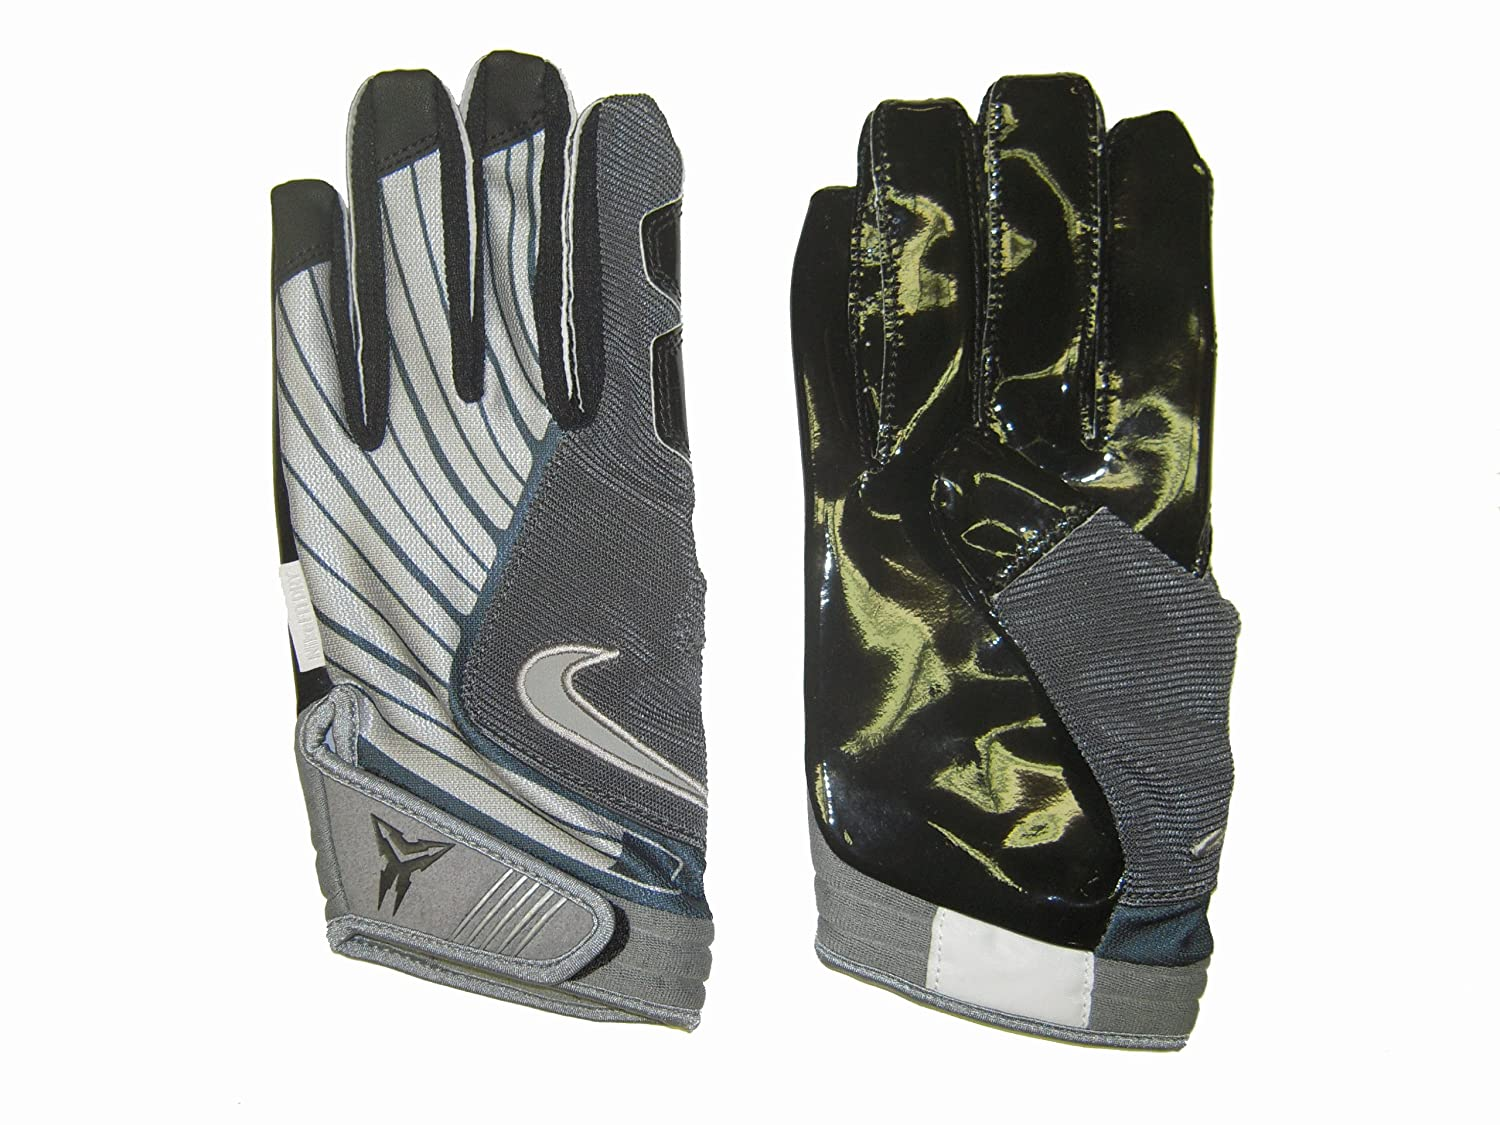 Nike Magnigrip Vapor-College Football Gloves Silicone Palm клюшка для гольфа nike vapor pro 2015